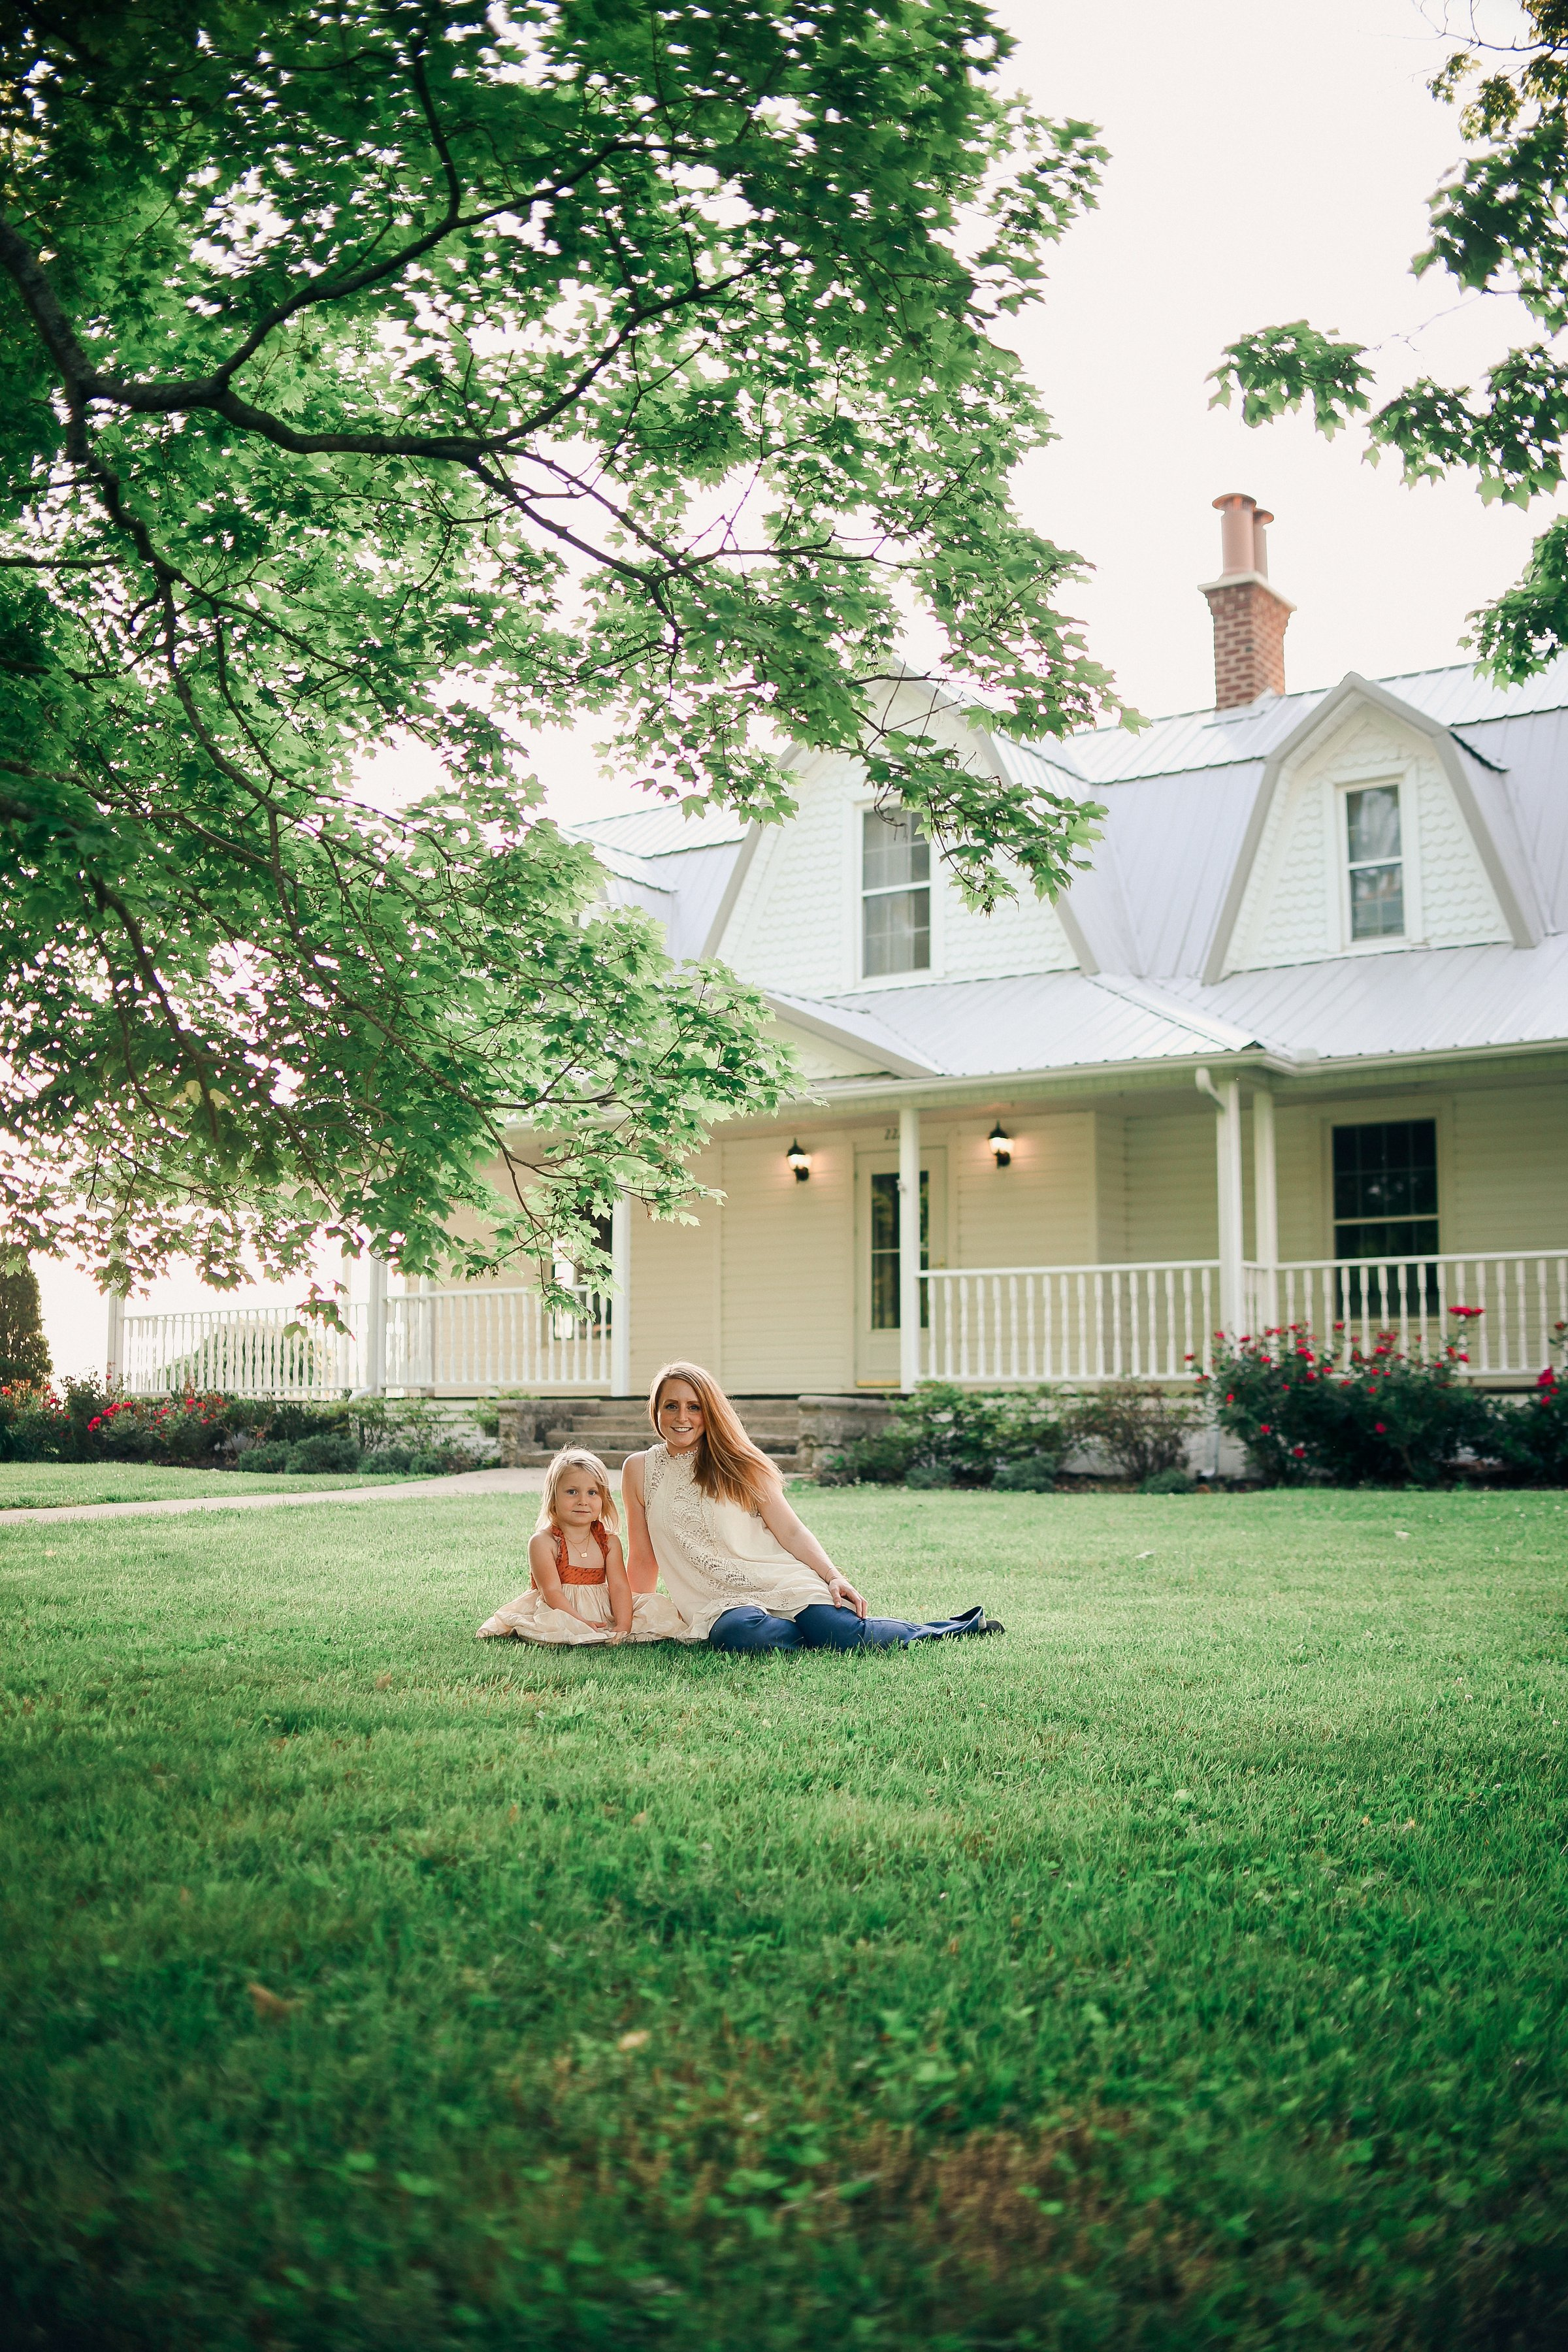 We have each other and that is more than enough. We love our sweet farmhouse. It's just an added bonus to our life now.